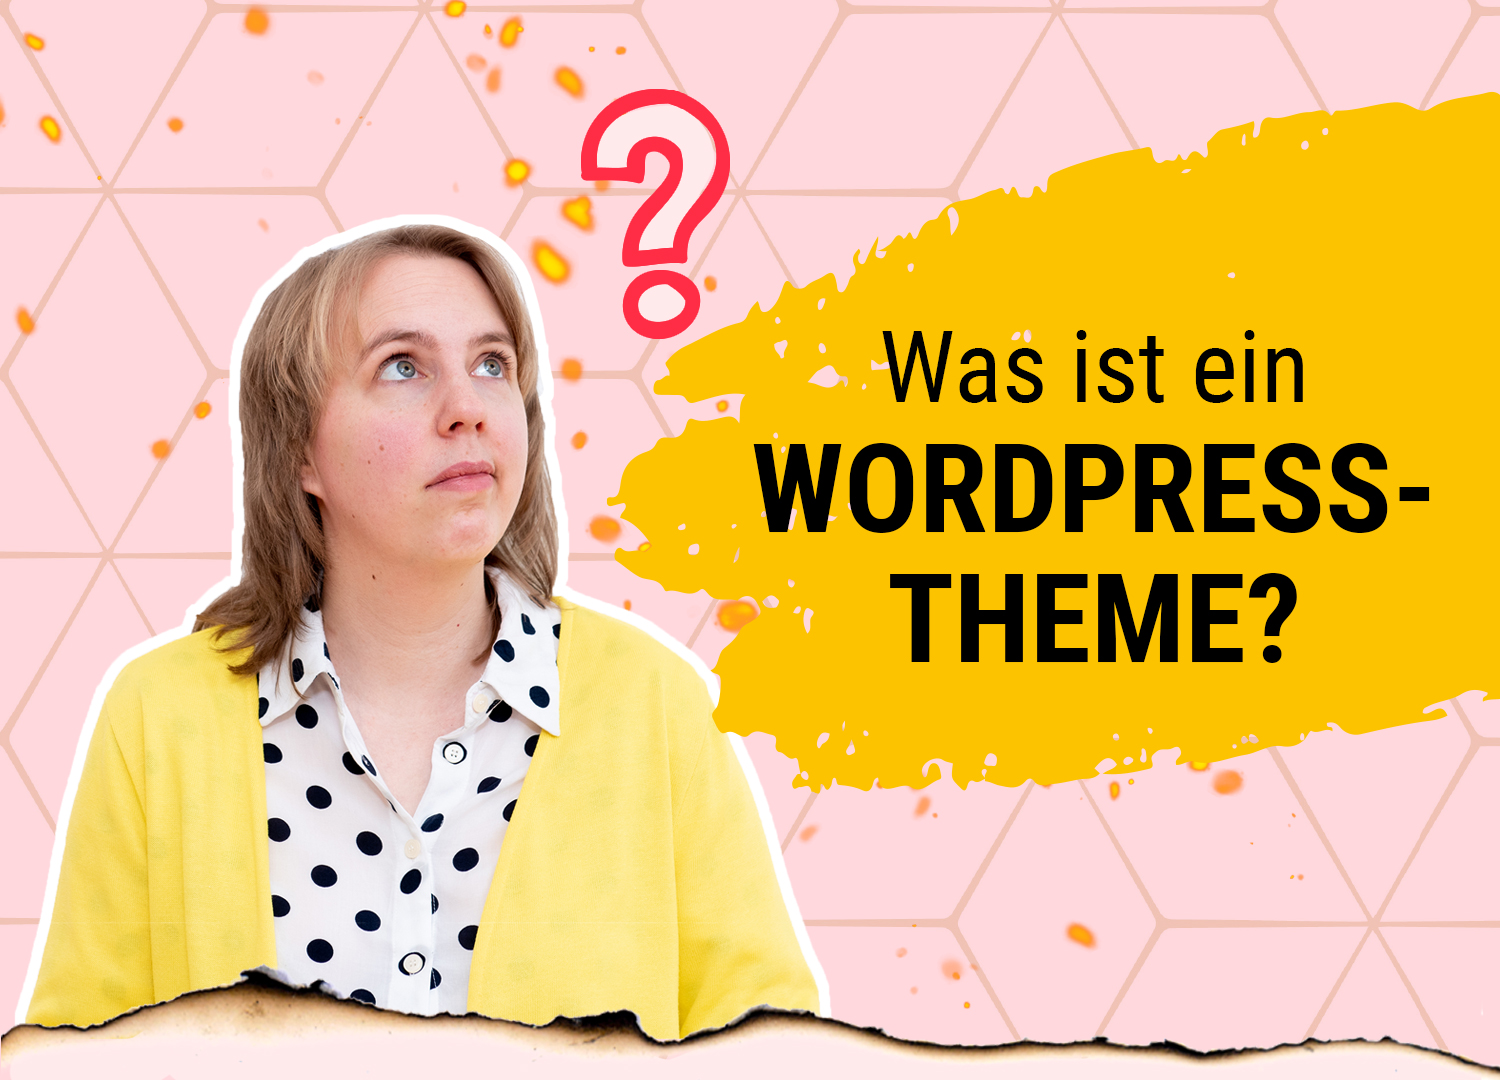 Blogartikel: Was ist ein WordPress-Theme